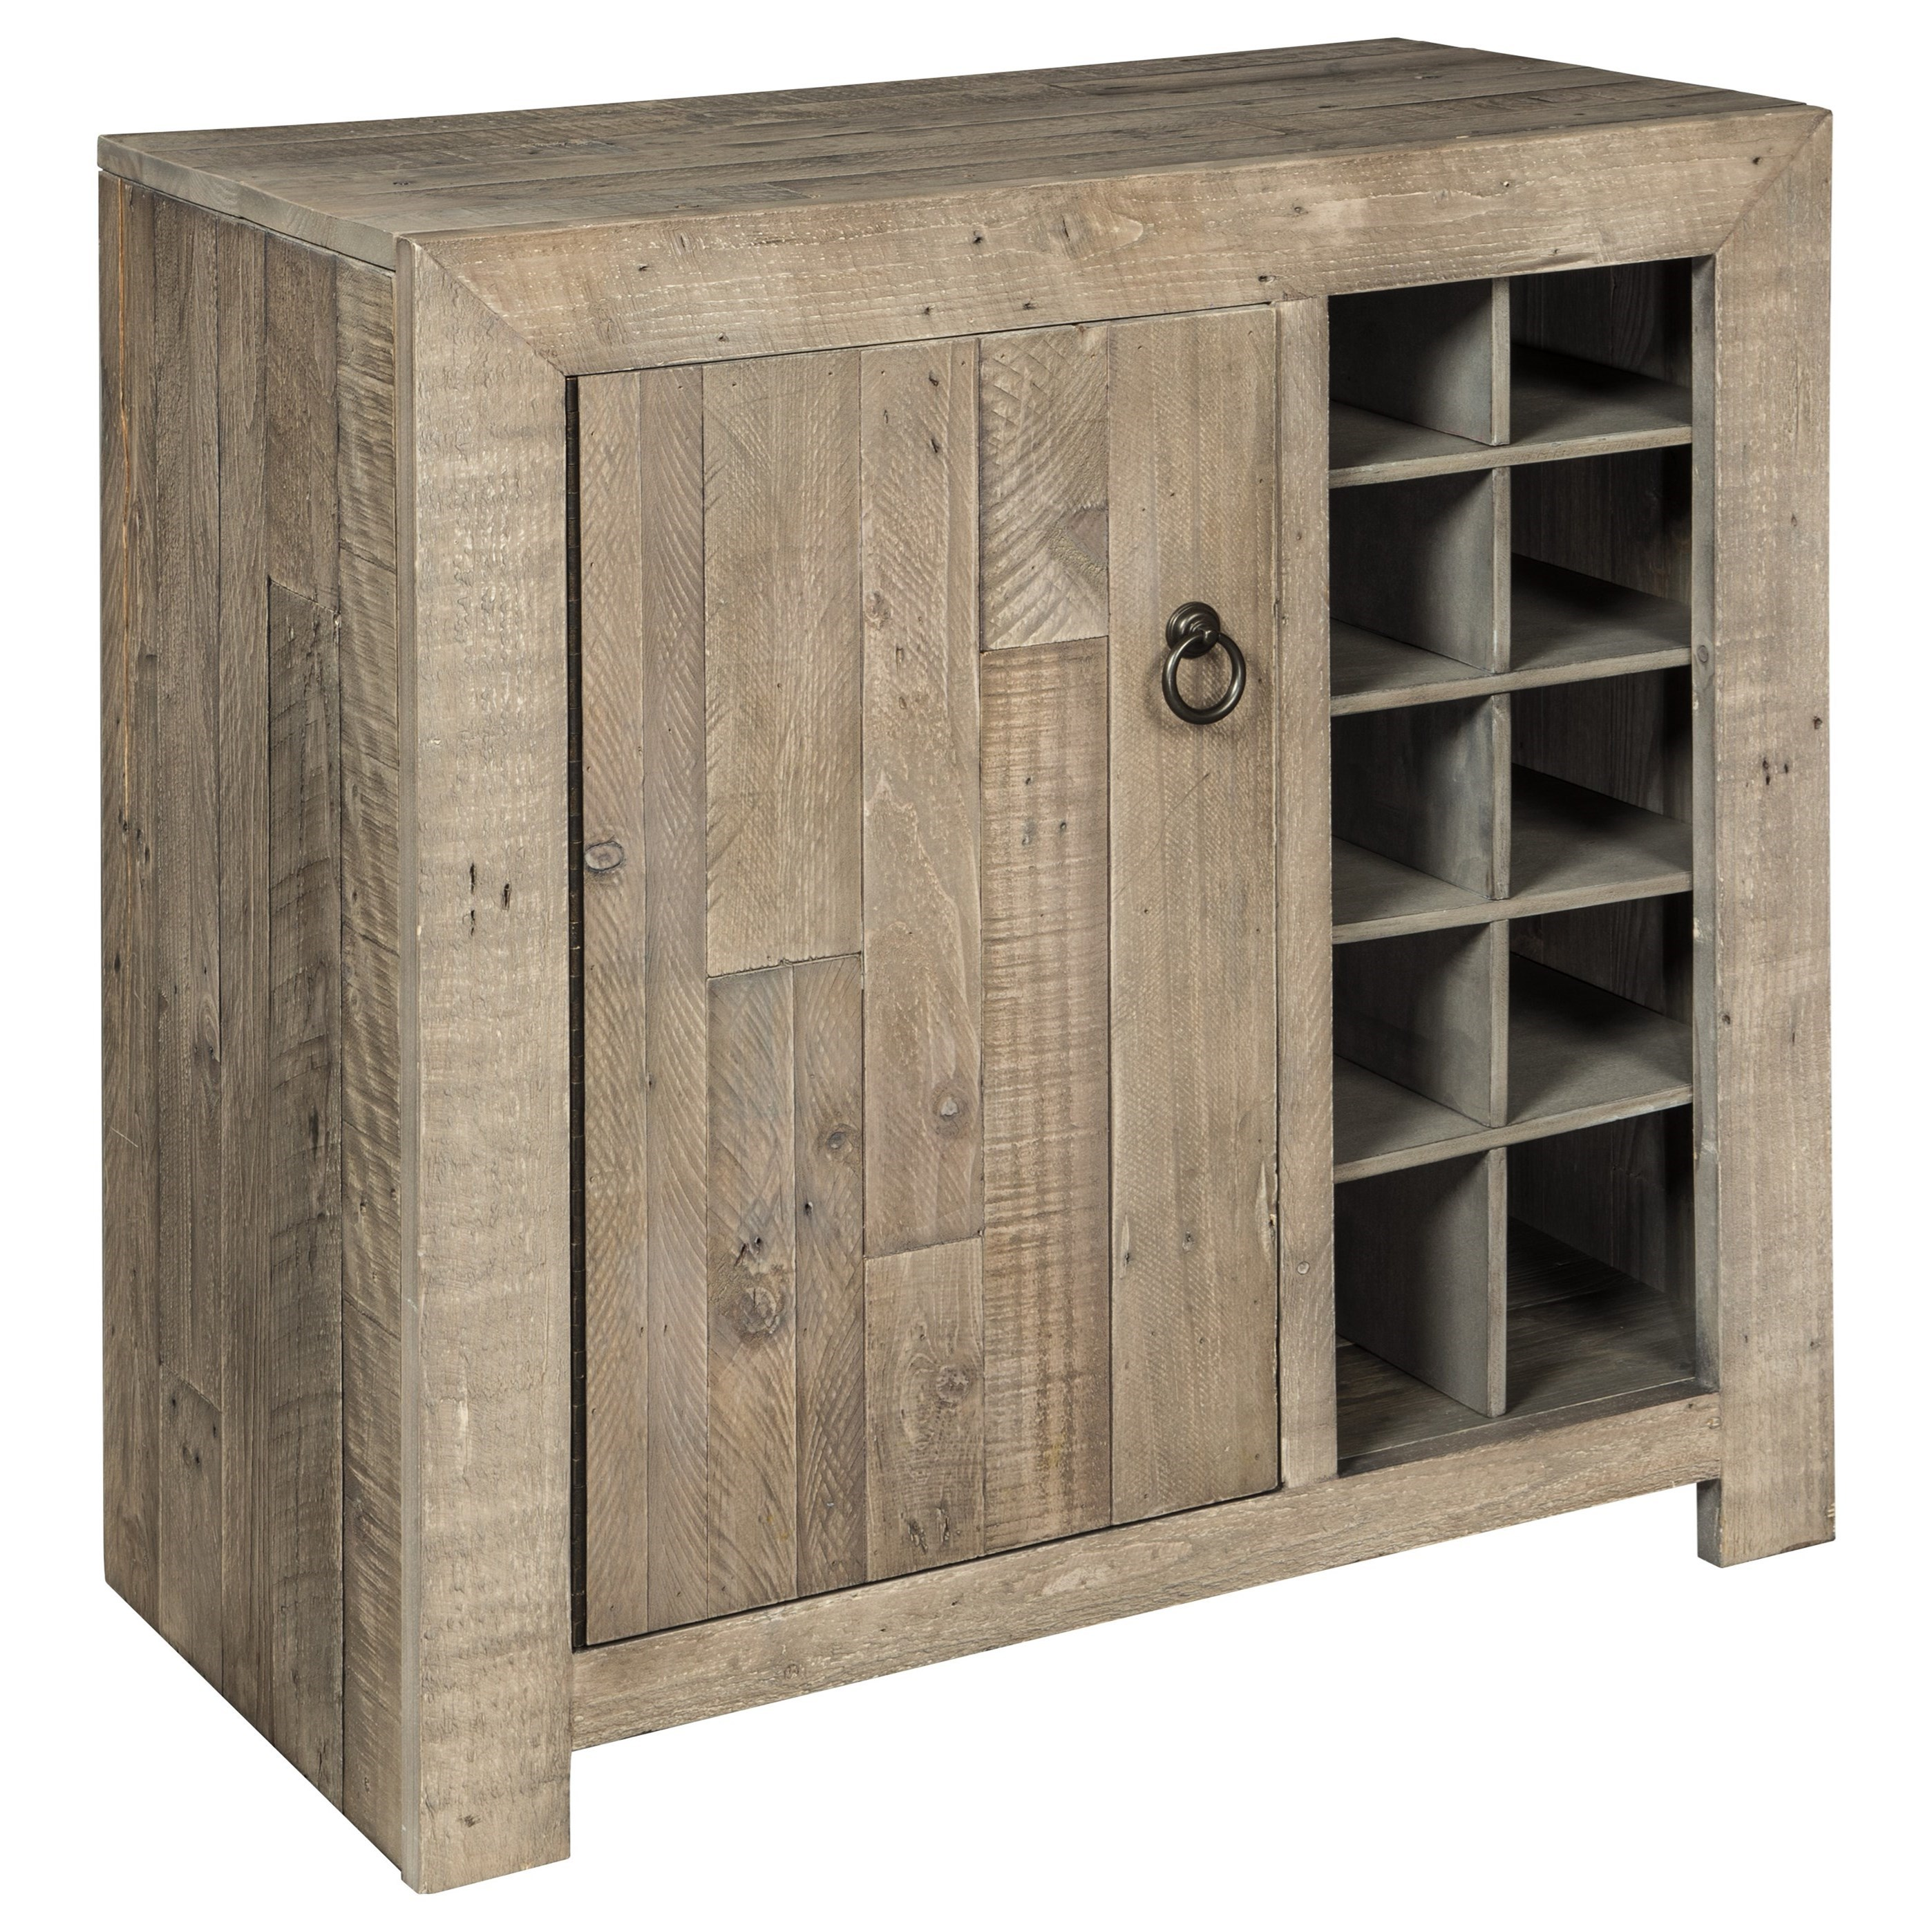 Signature Design by Ashley Forestmin Wine Cabinet - Item Number: A4000063